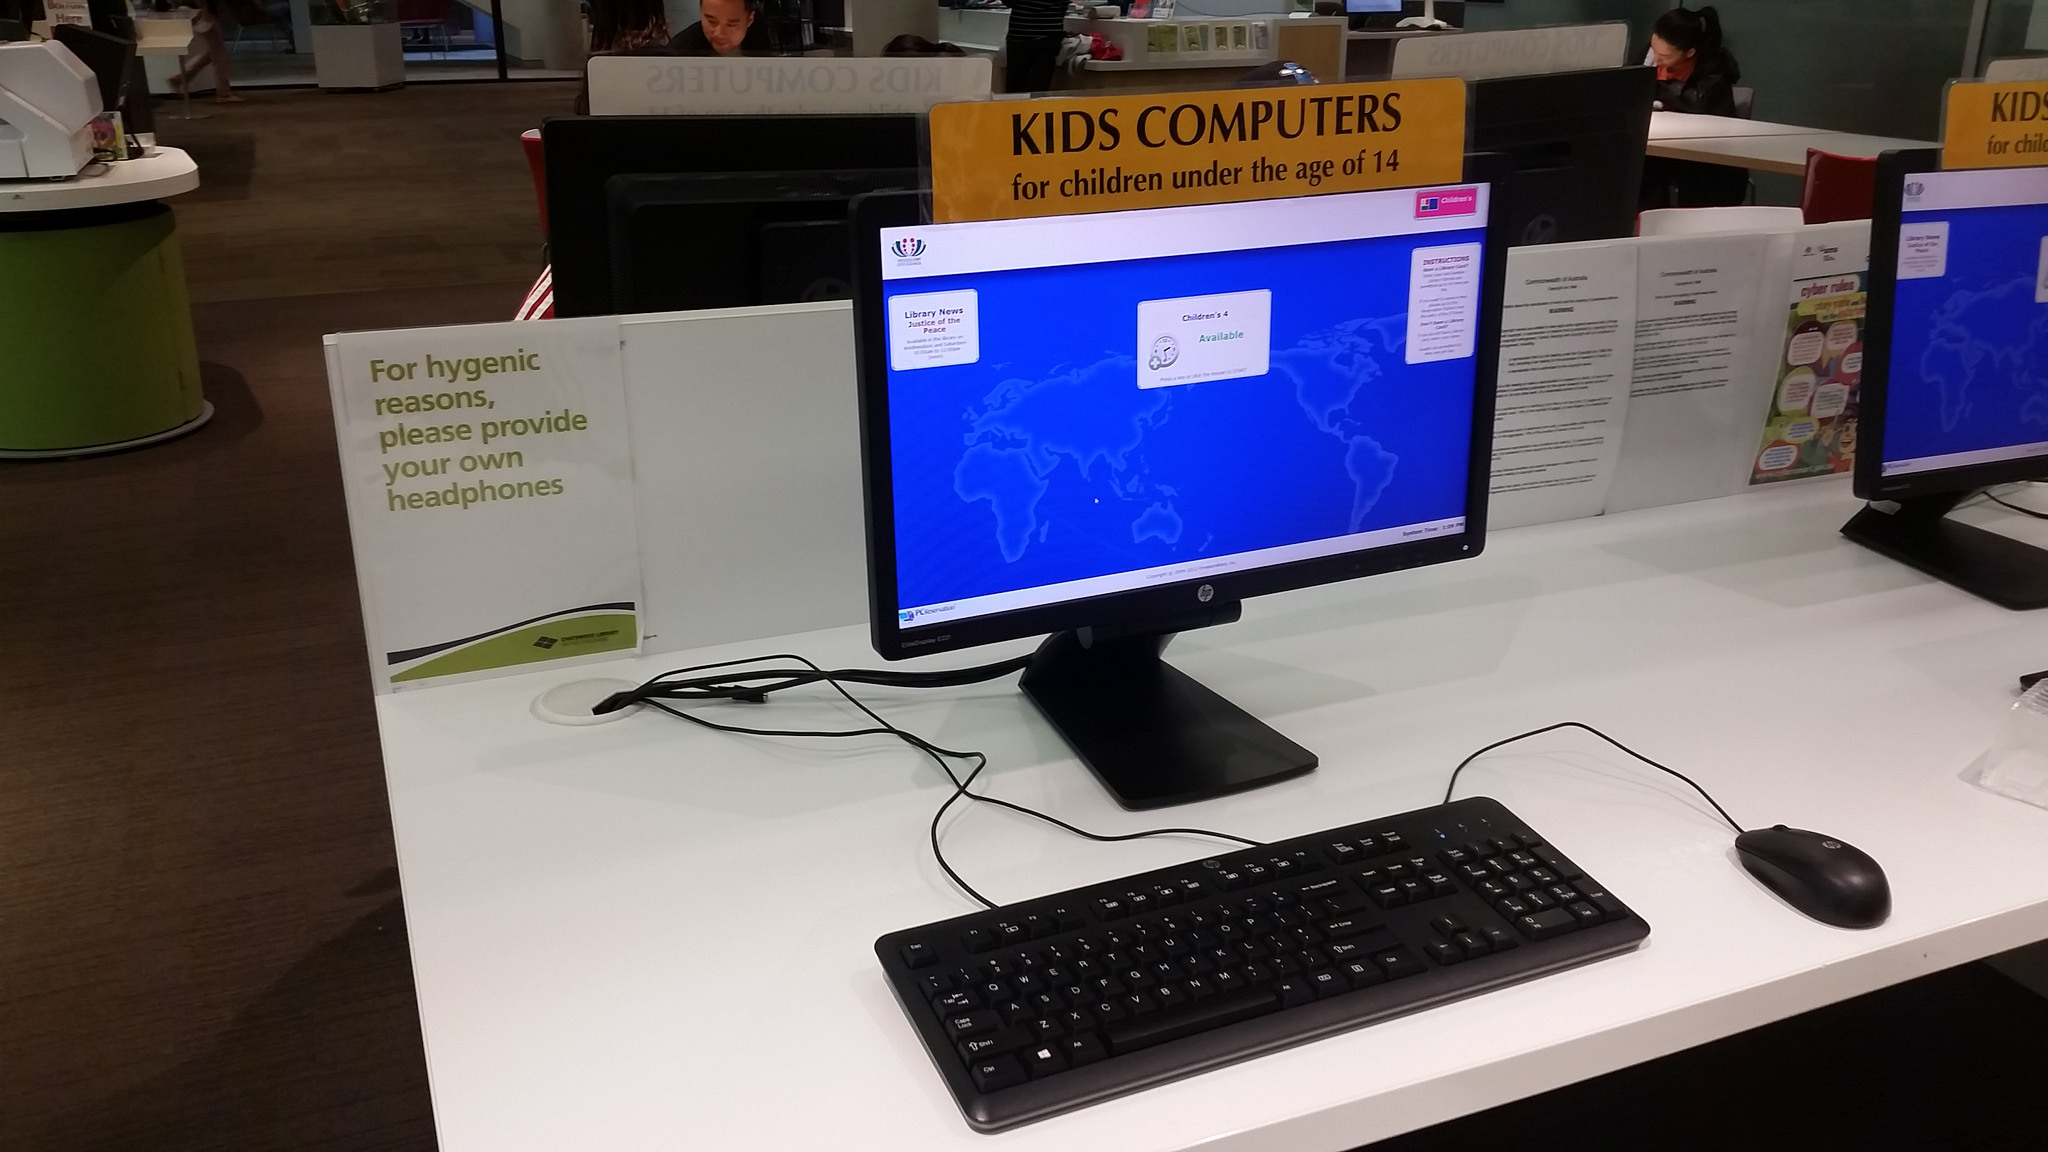 Kids Computer Chatswood Library